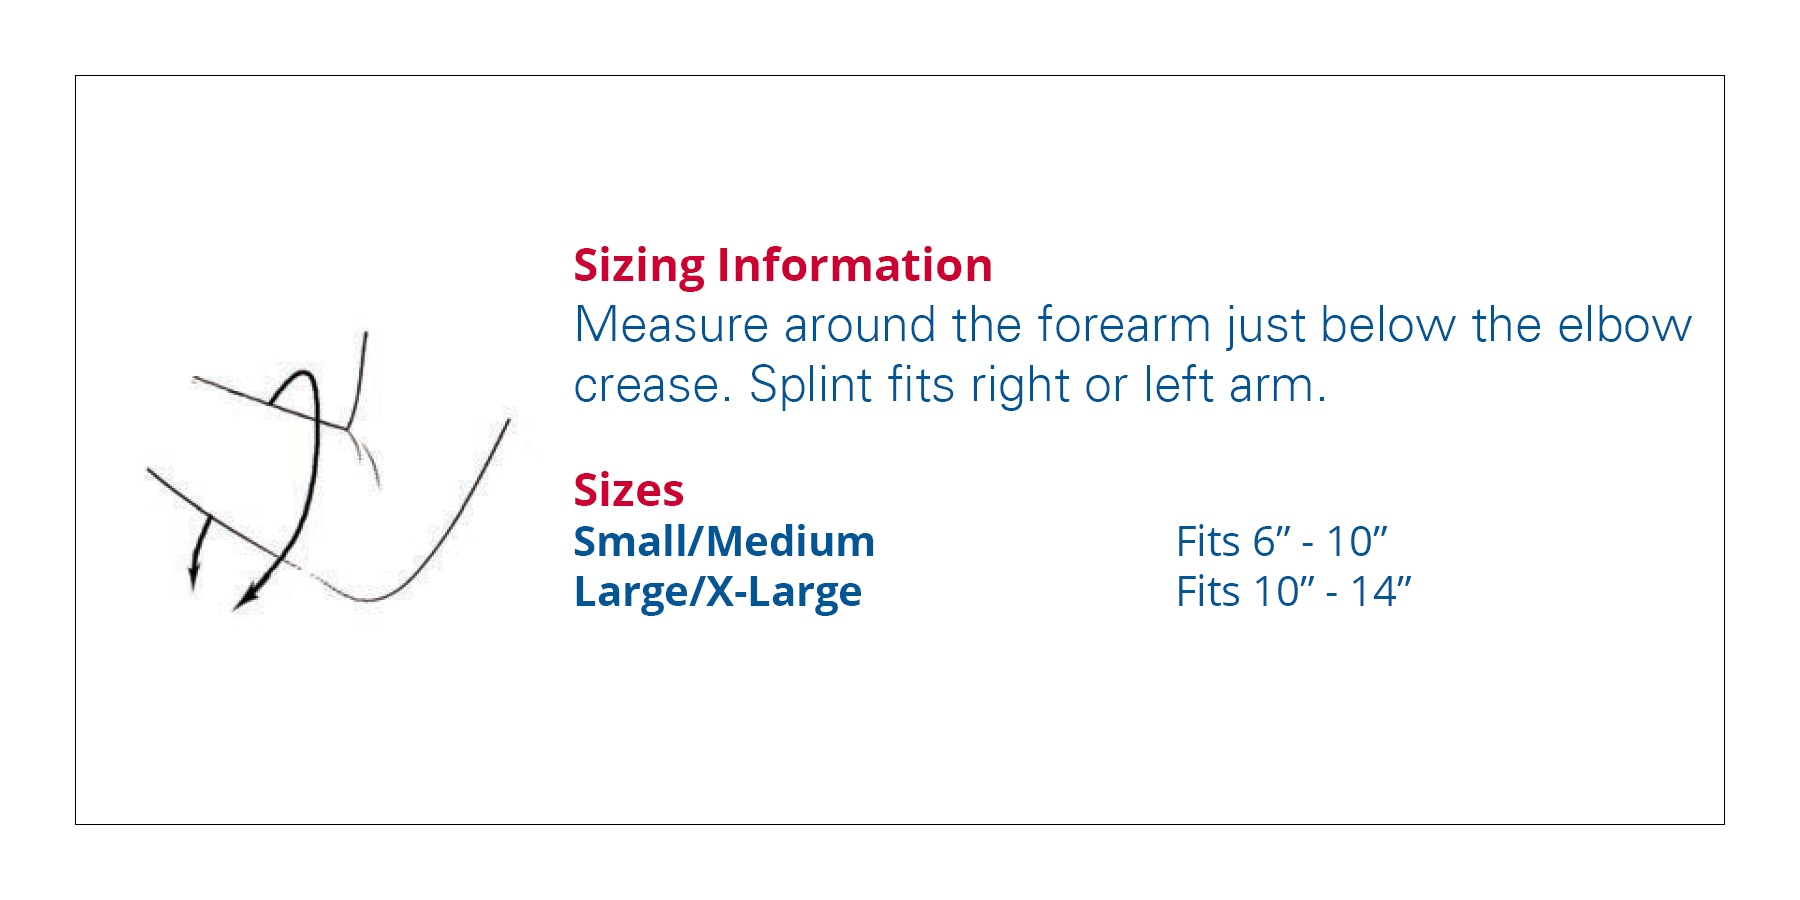 3pp Elbow POP Splint size information